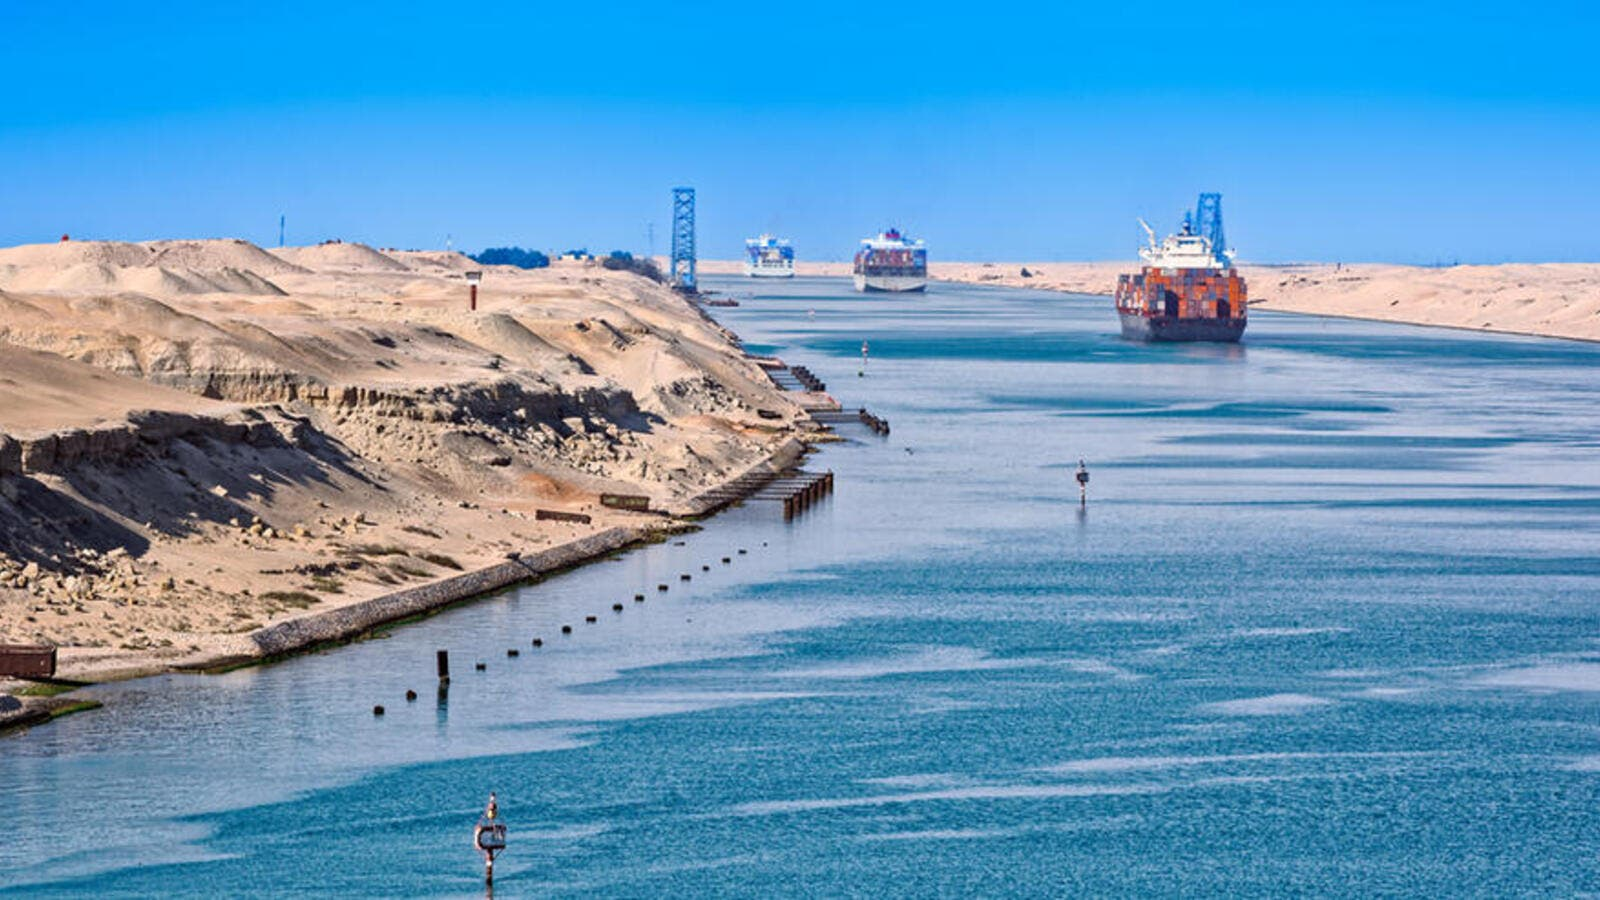 Egypt: Economic Zone Of Suez Canal To Establish An Investment Arm